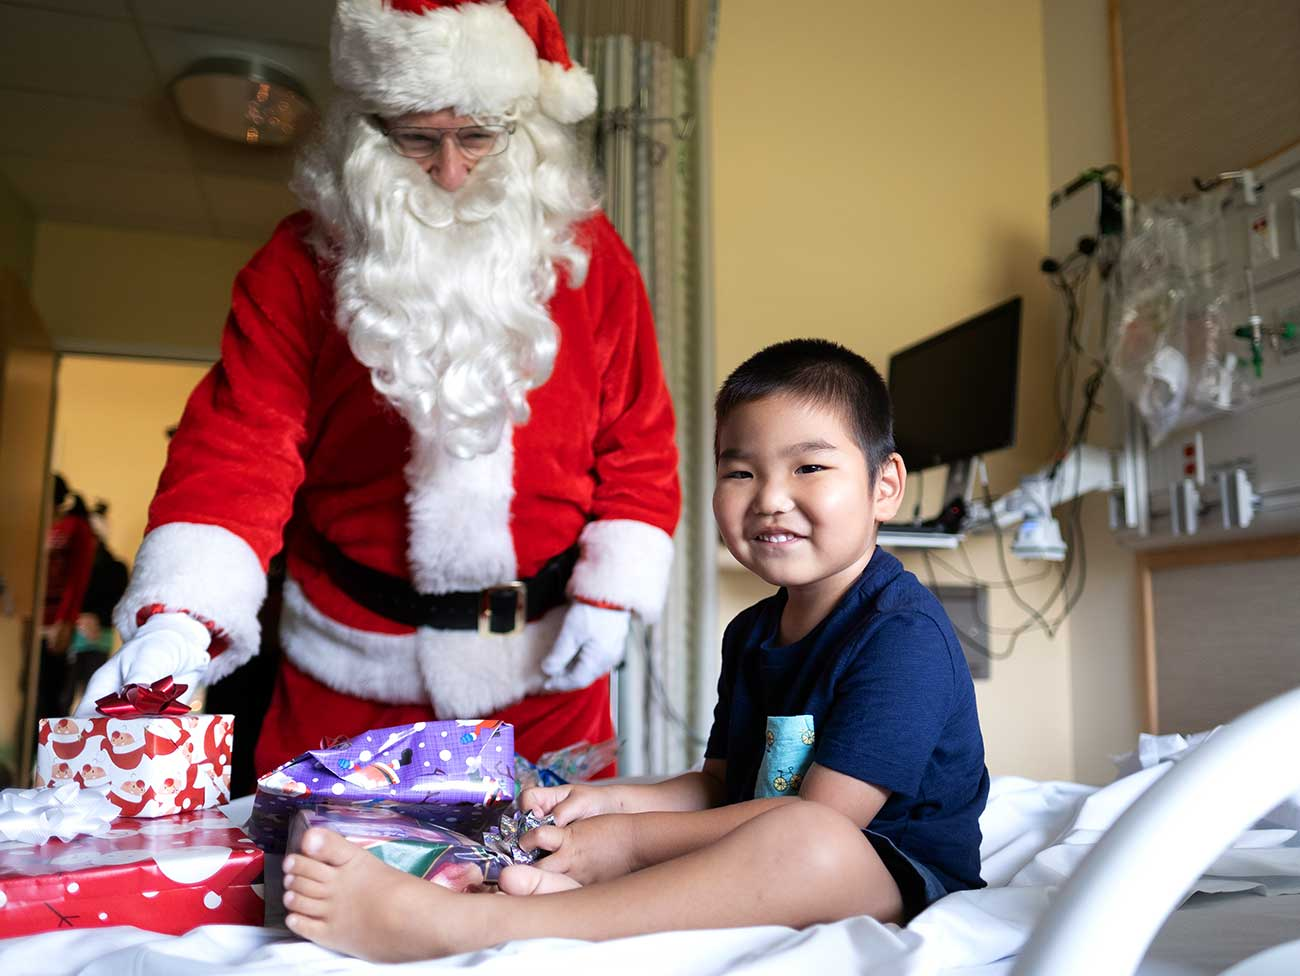 A smiling 4 year old boy in a hospital bed surrounded by gifts, Santa Claus is standing next to the bed.